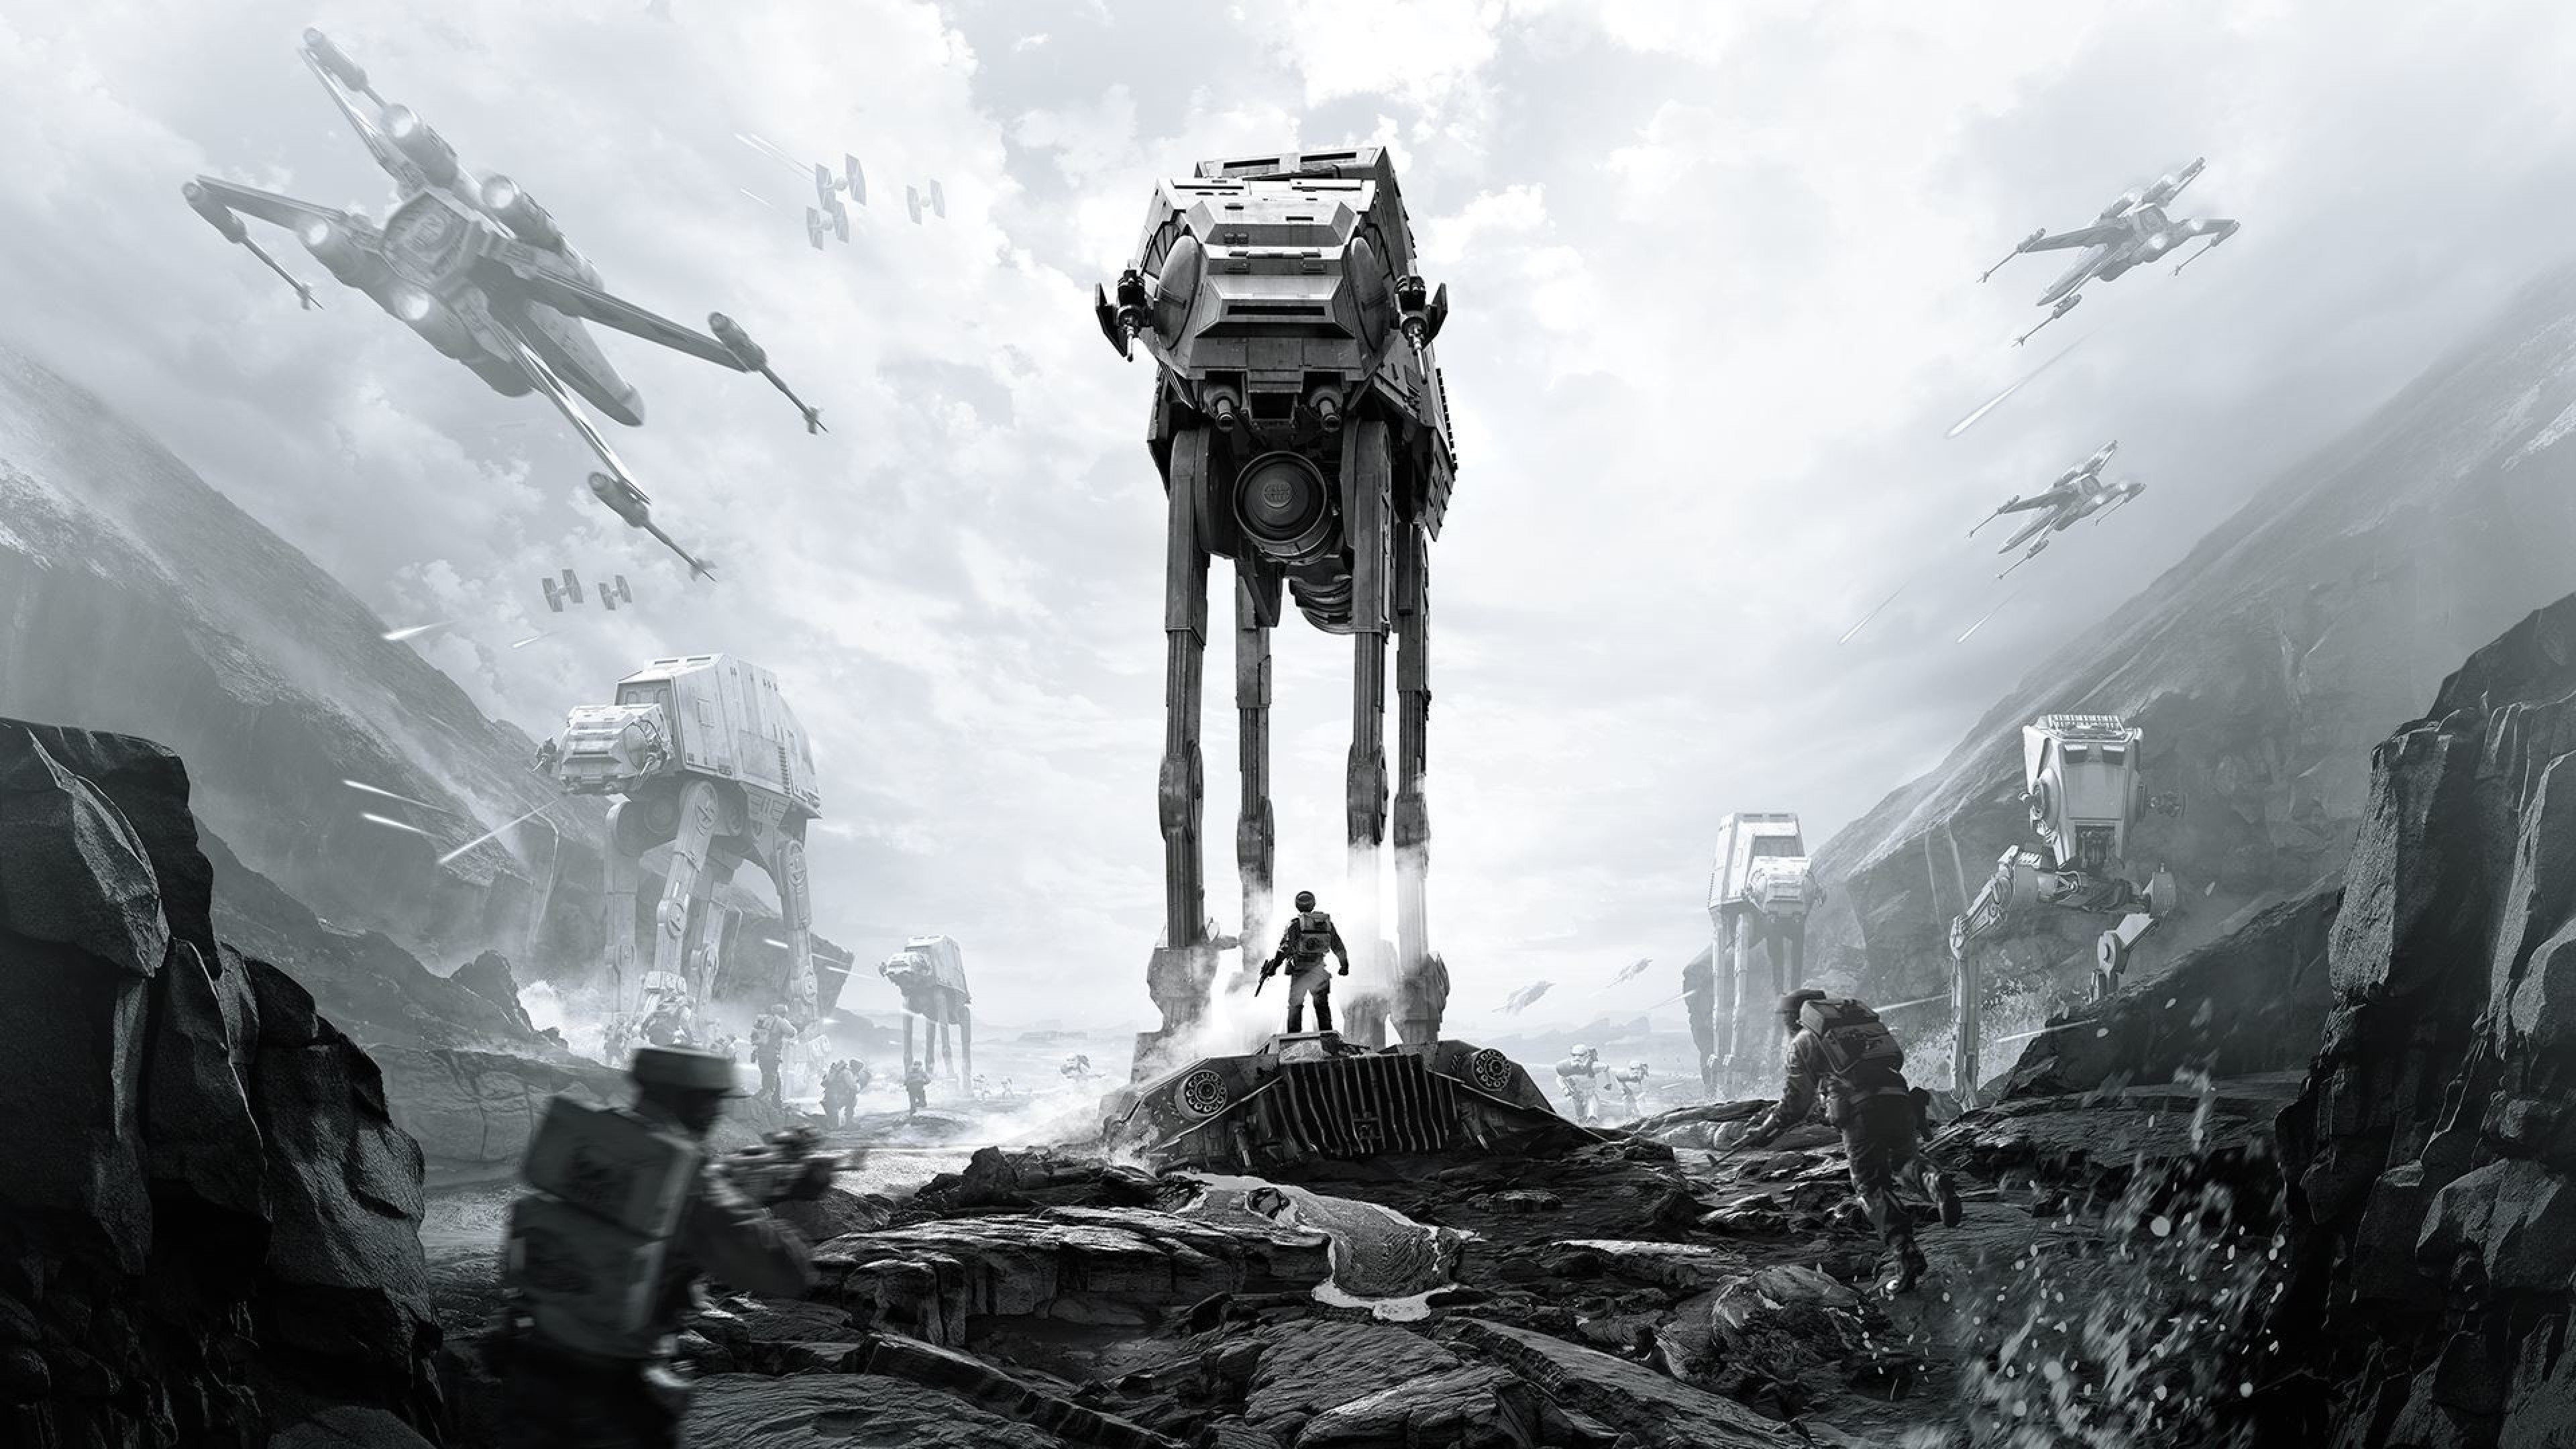 3840x2160  Wallpaper star wars battlefront, ea dice, art